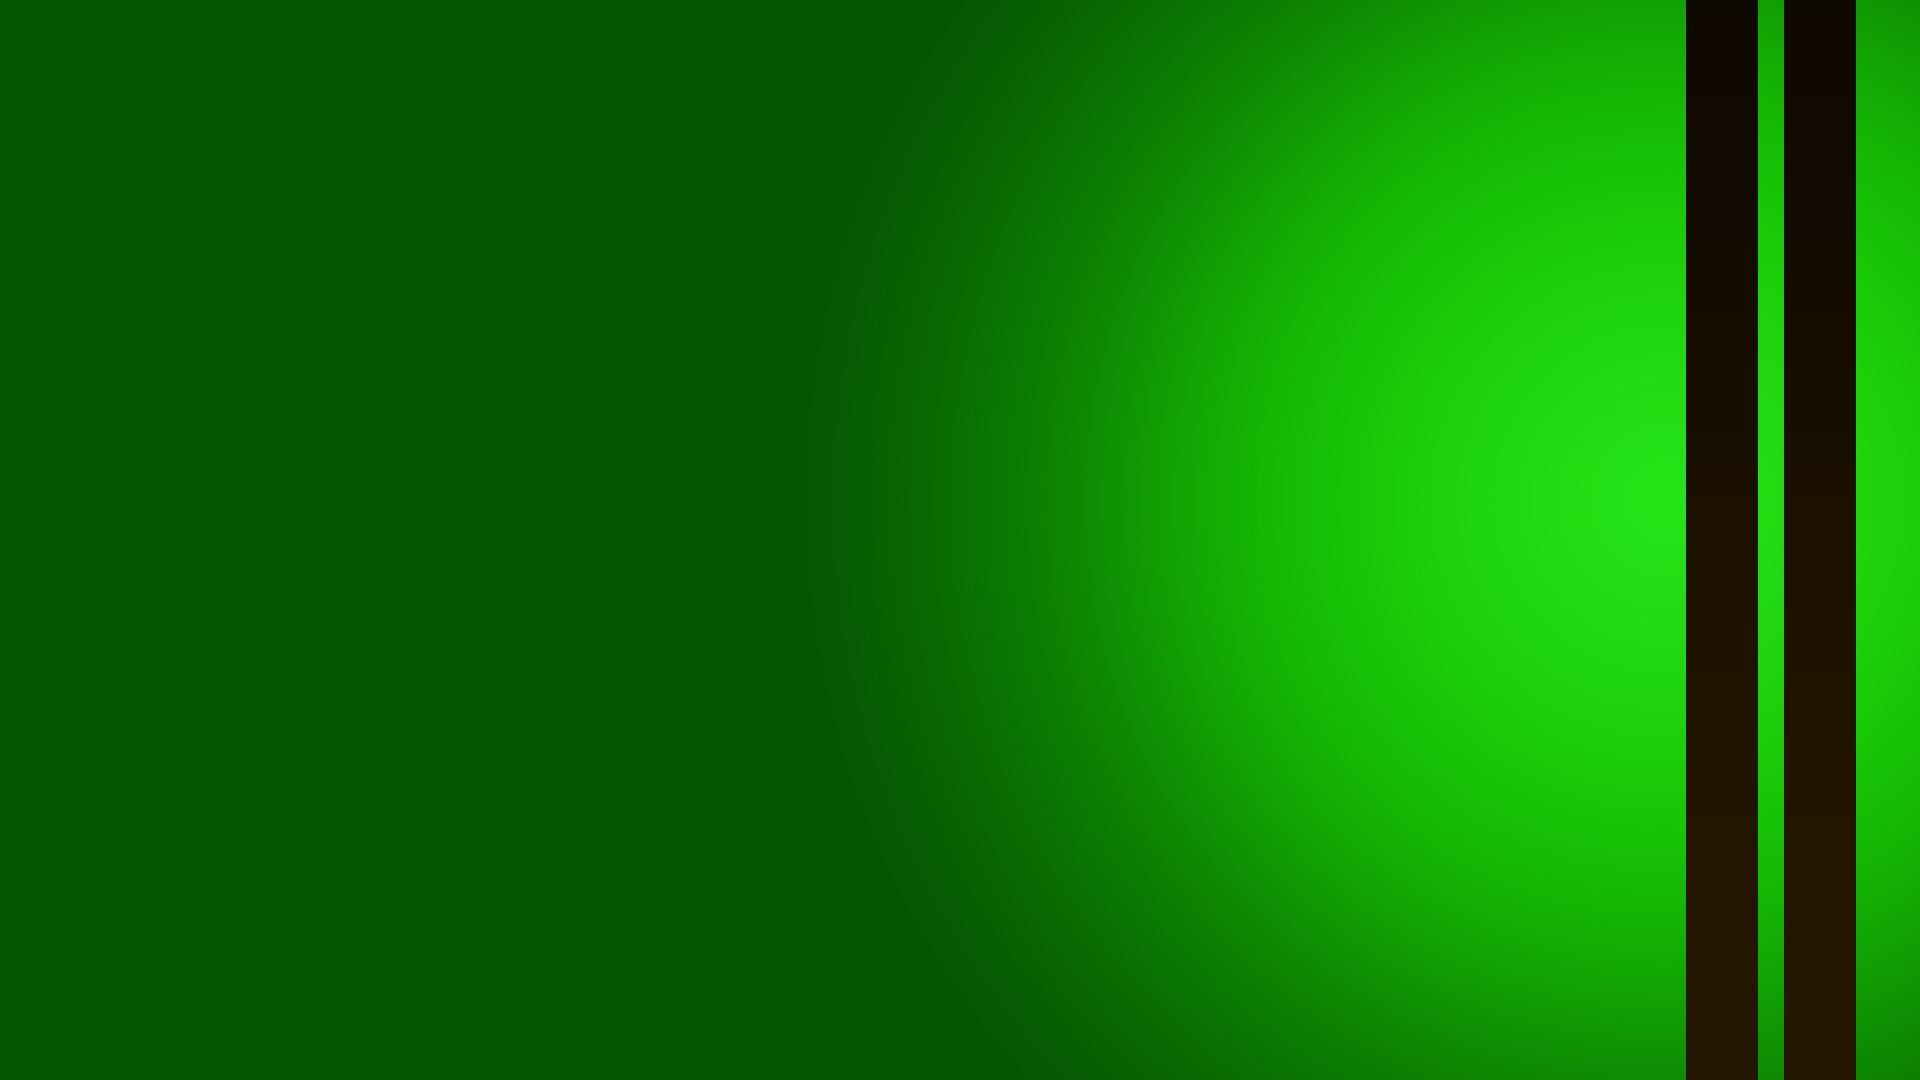 HD Solid Color Wallpaper (81+ images)